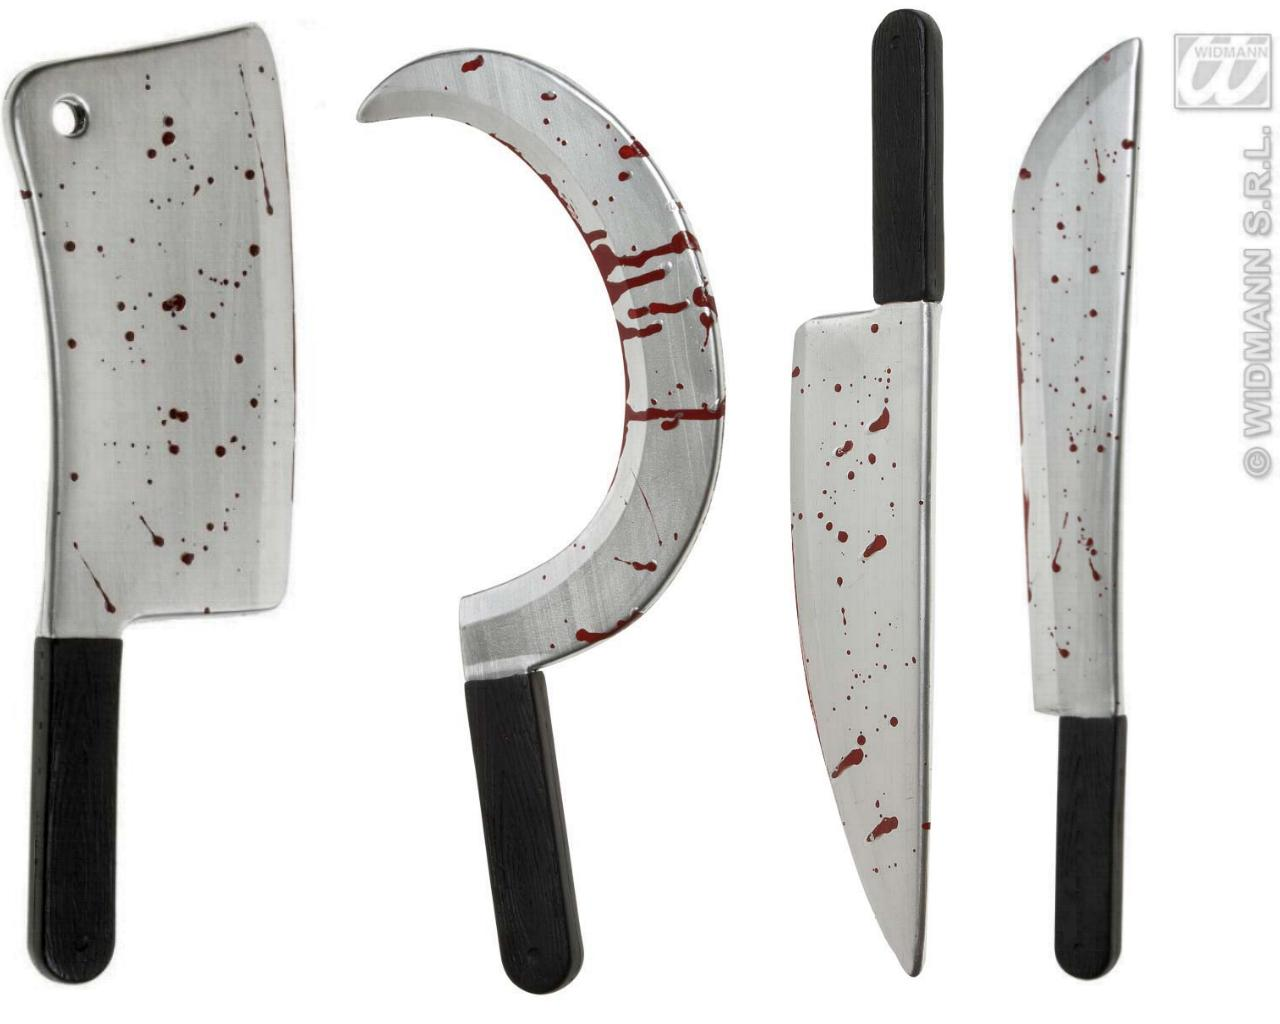 Blutiges Beil, Machete, Messer, Sichel, Halloween Sense  860